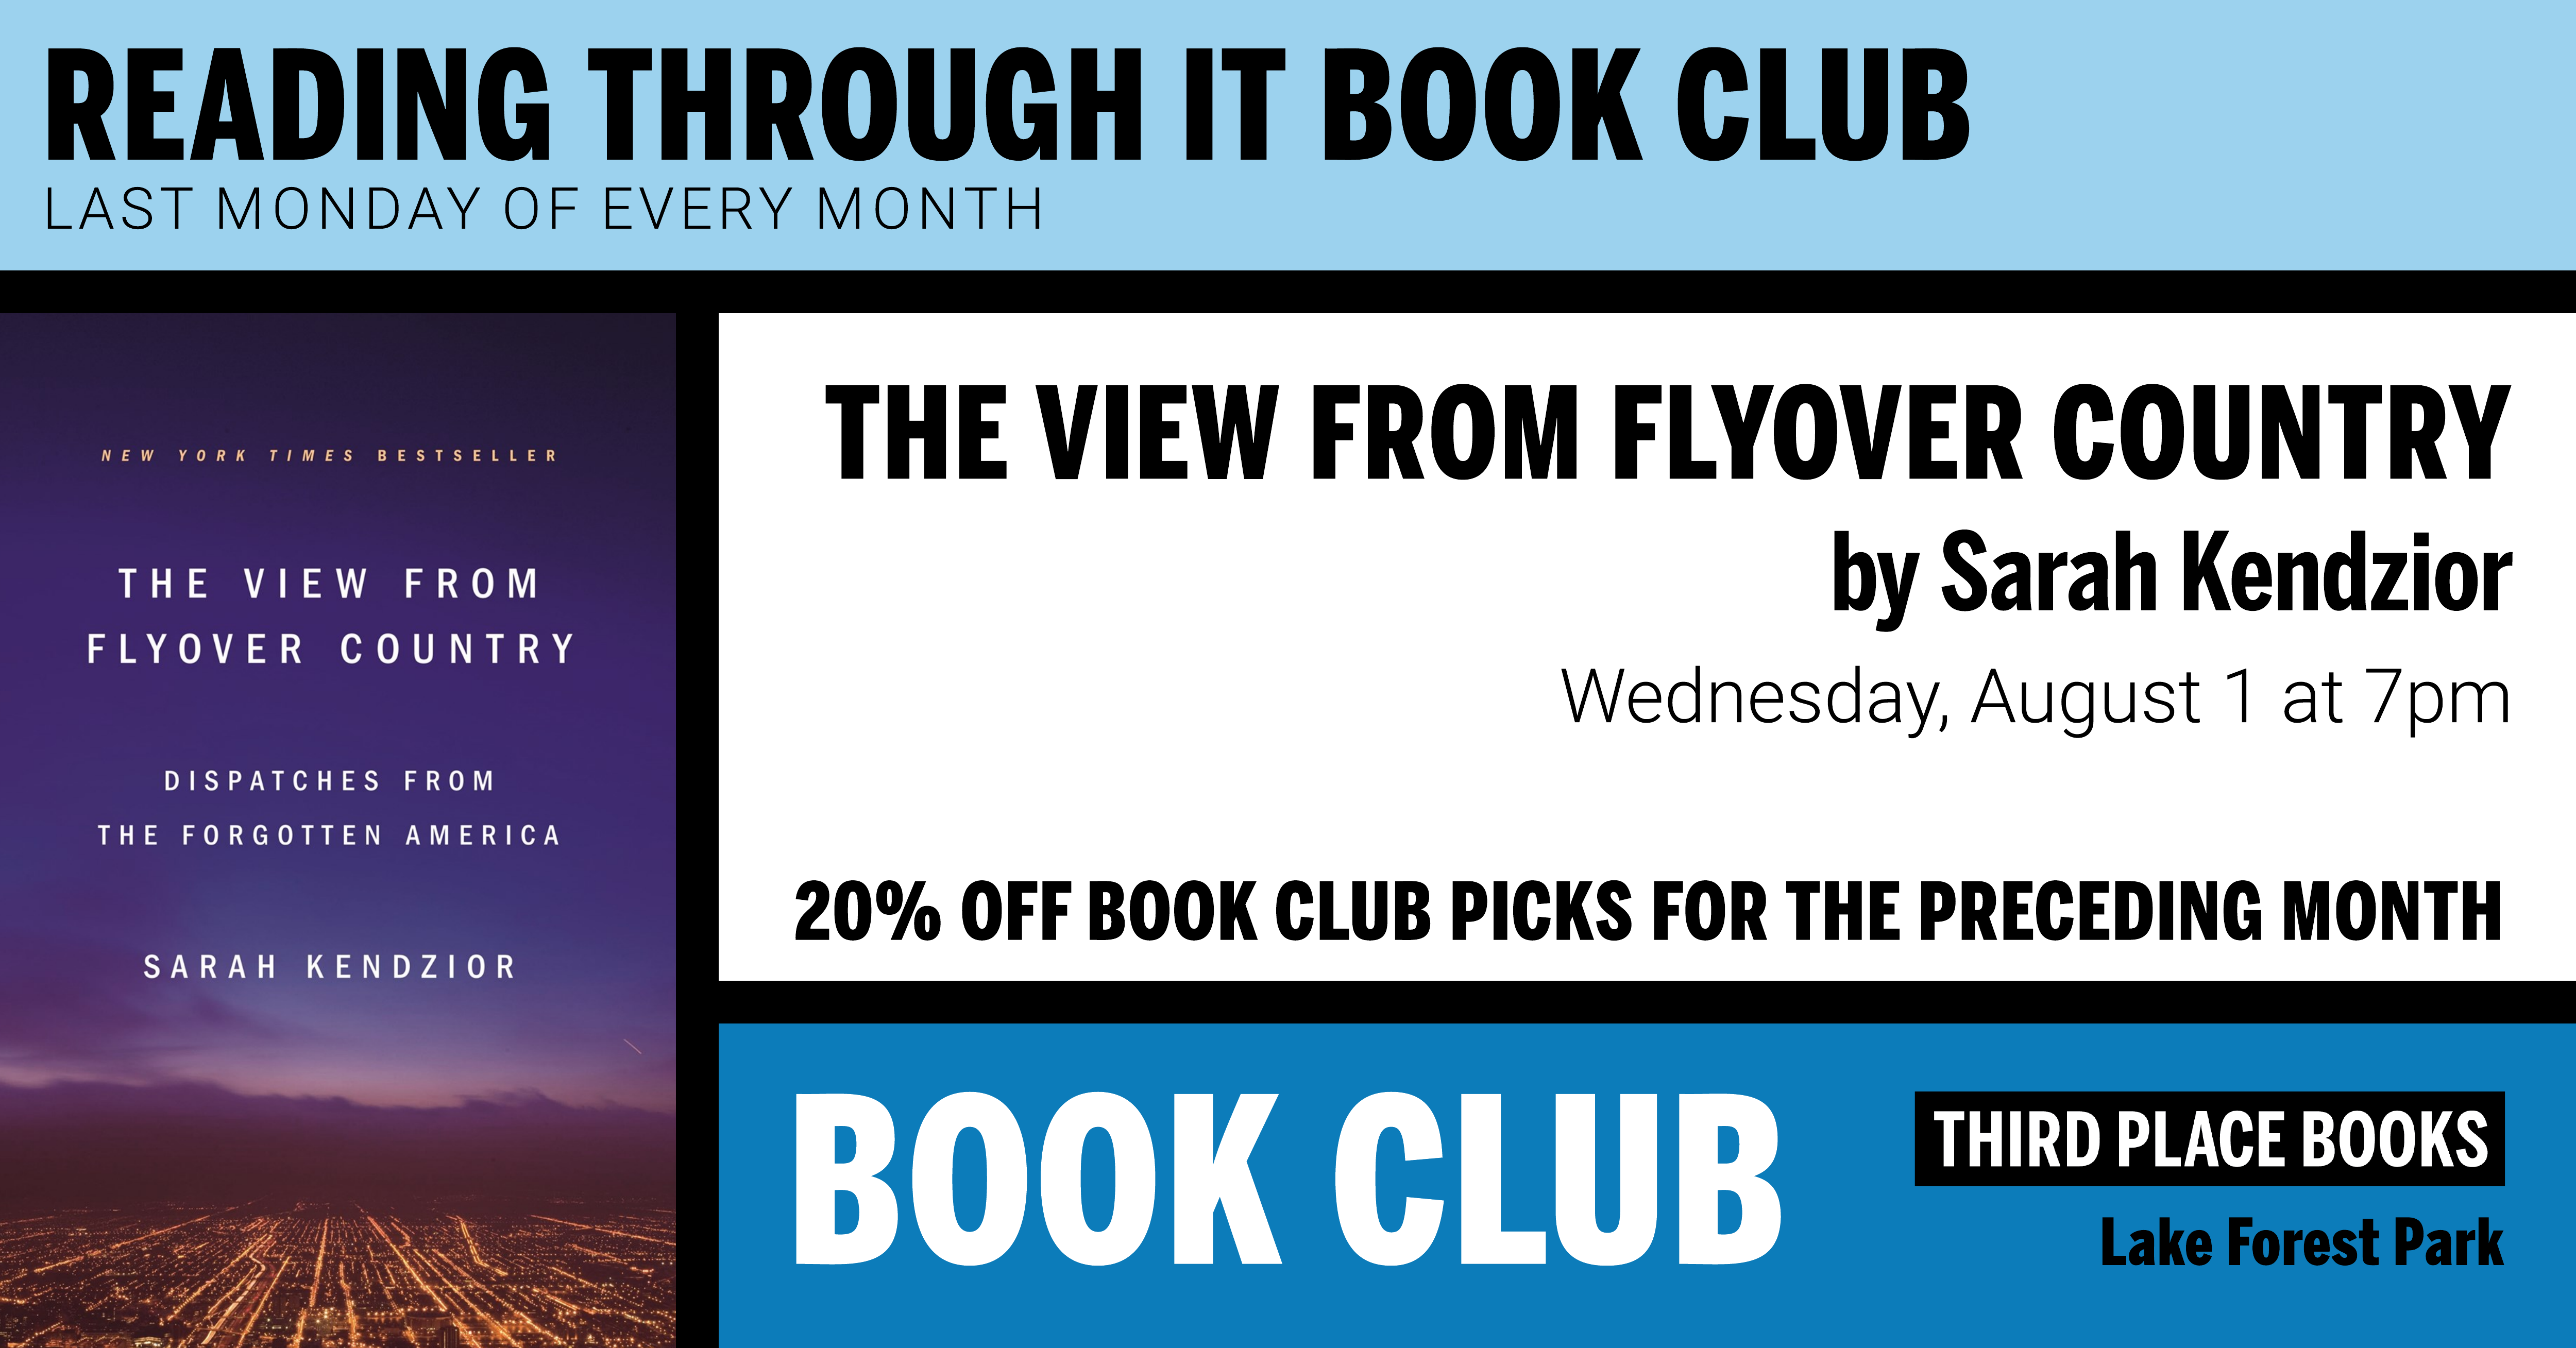 Reading Through It Book Club discussing The View From Flyover Country on Wednesday, August 1 at 7pm